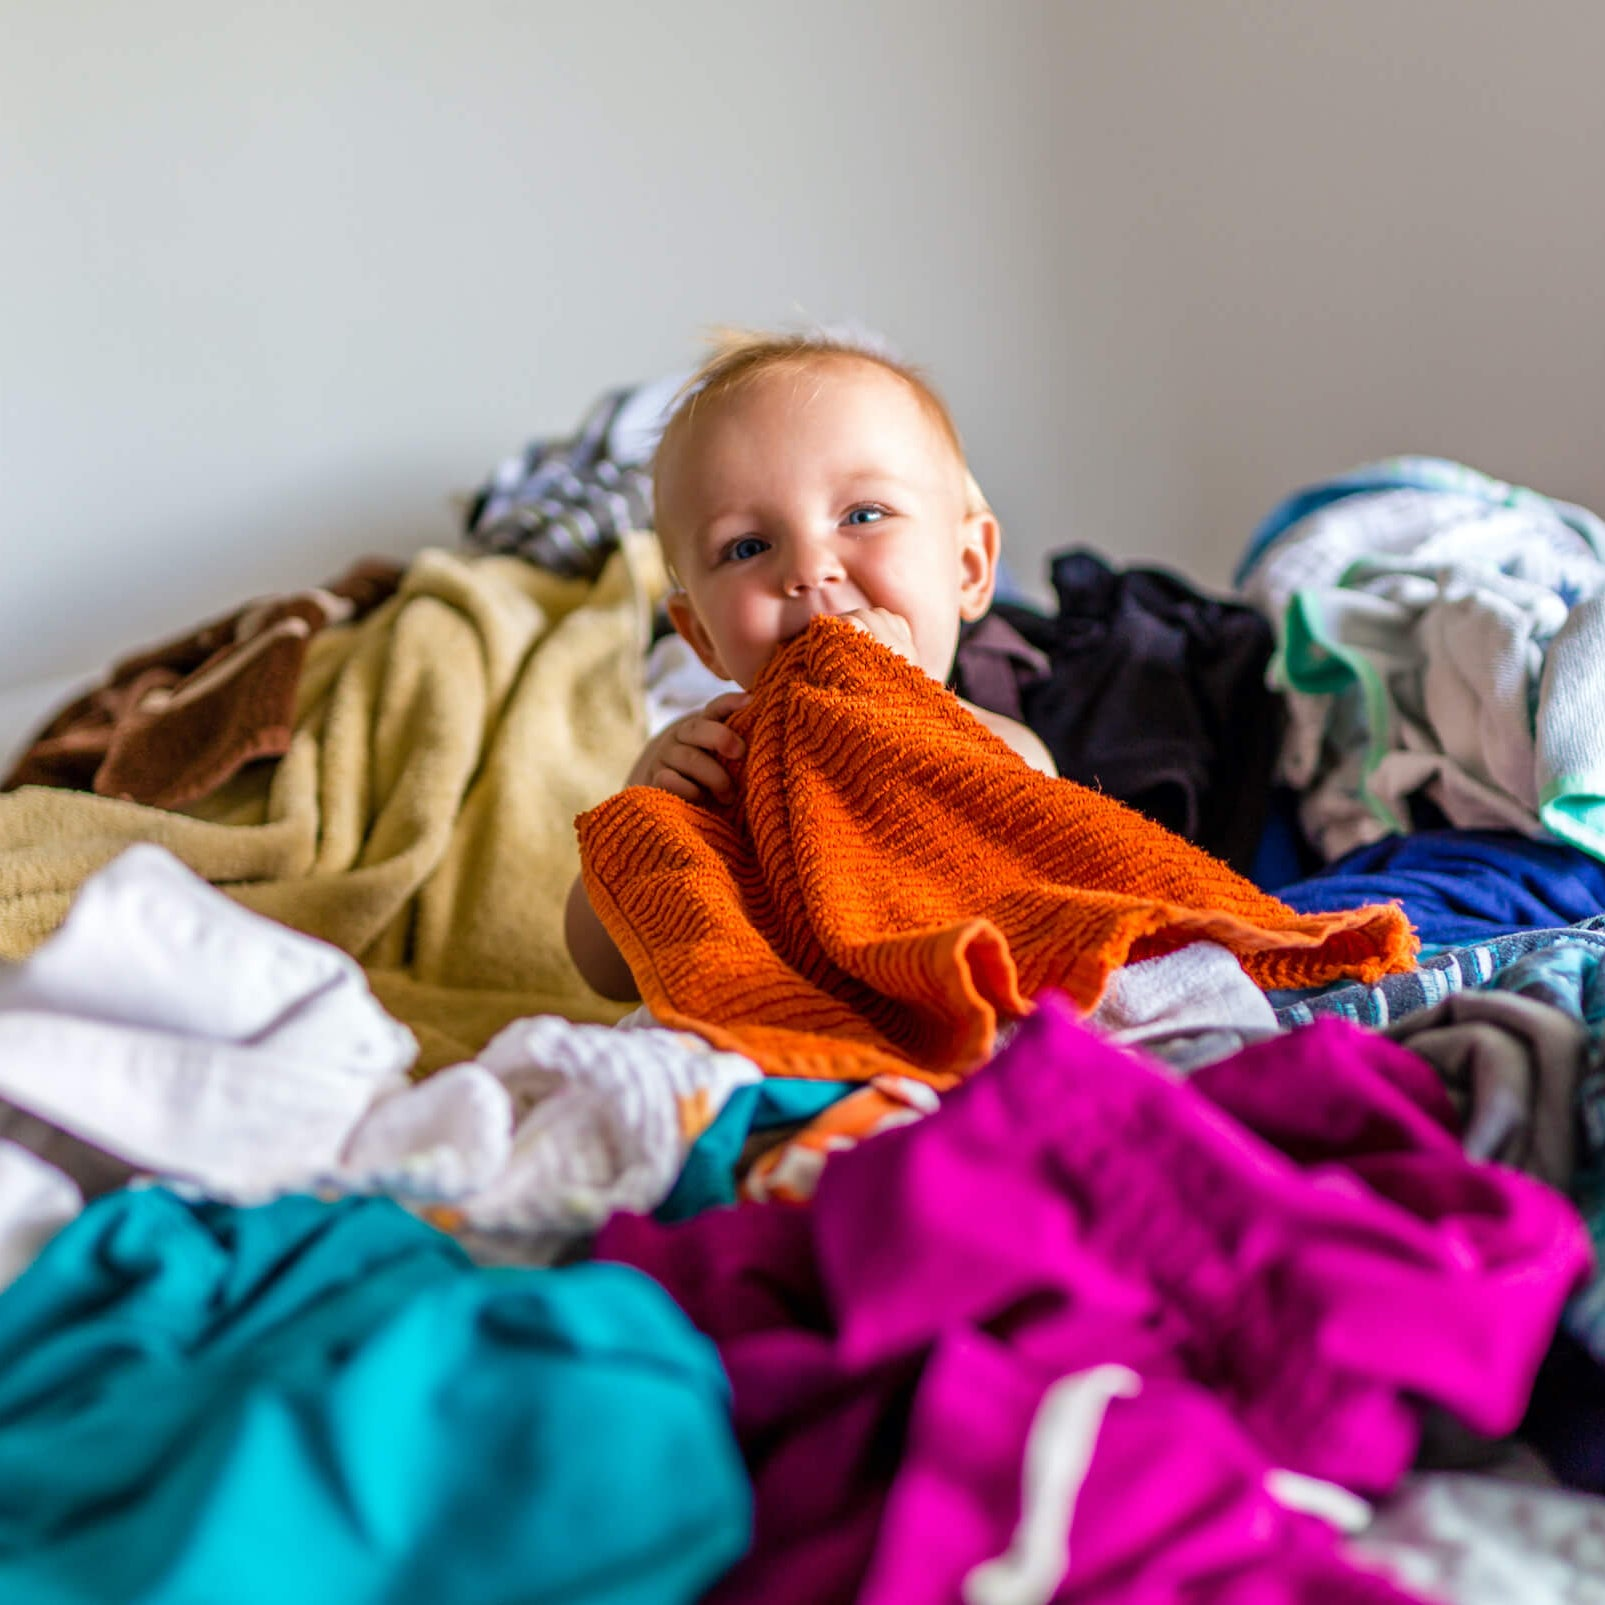 A baby plays in a pile of second hand baby clothes